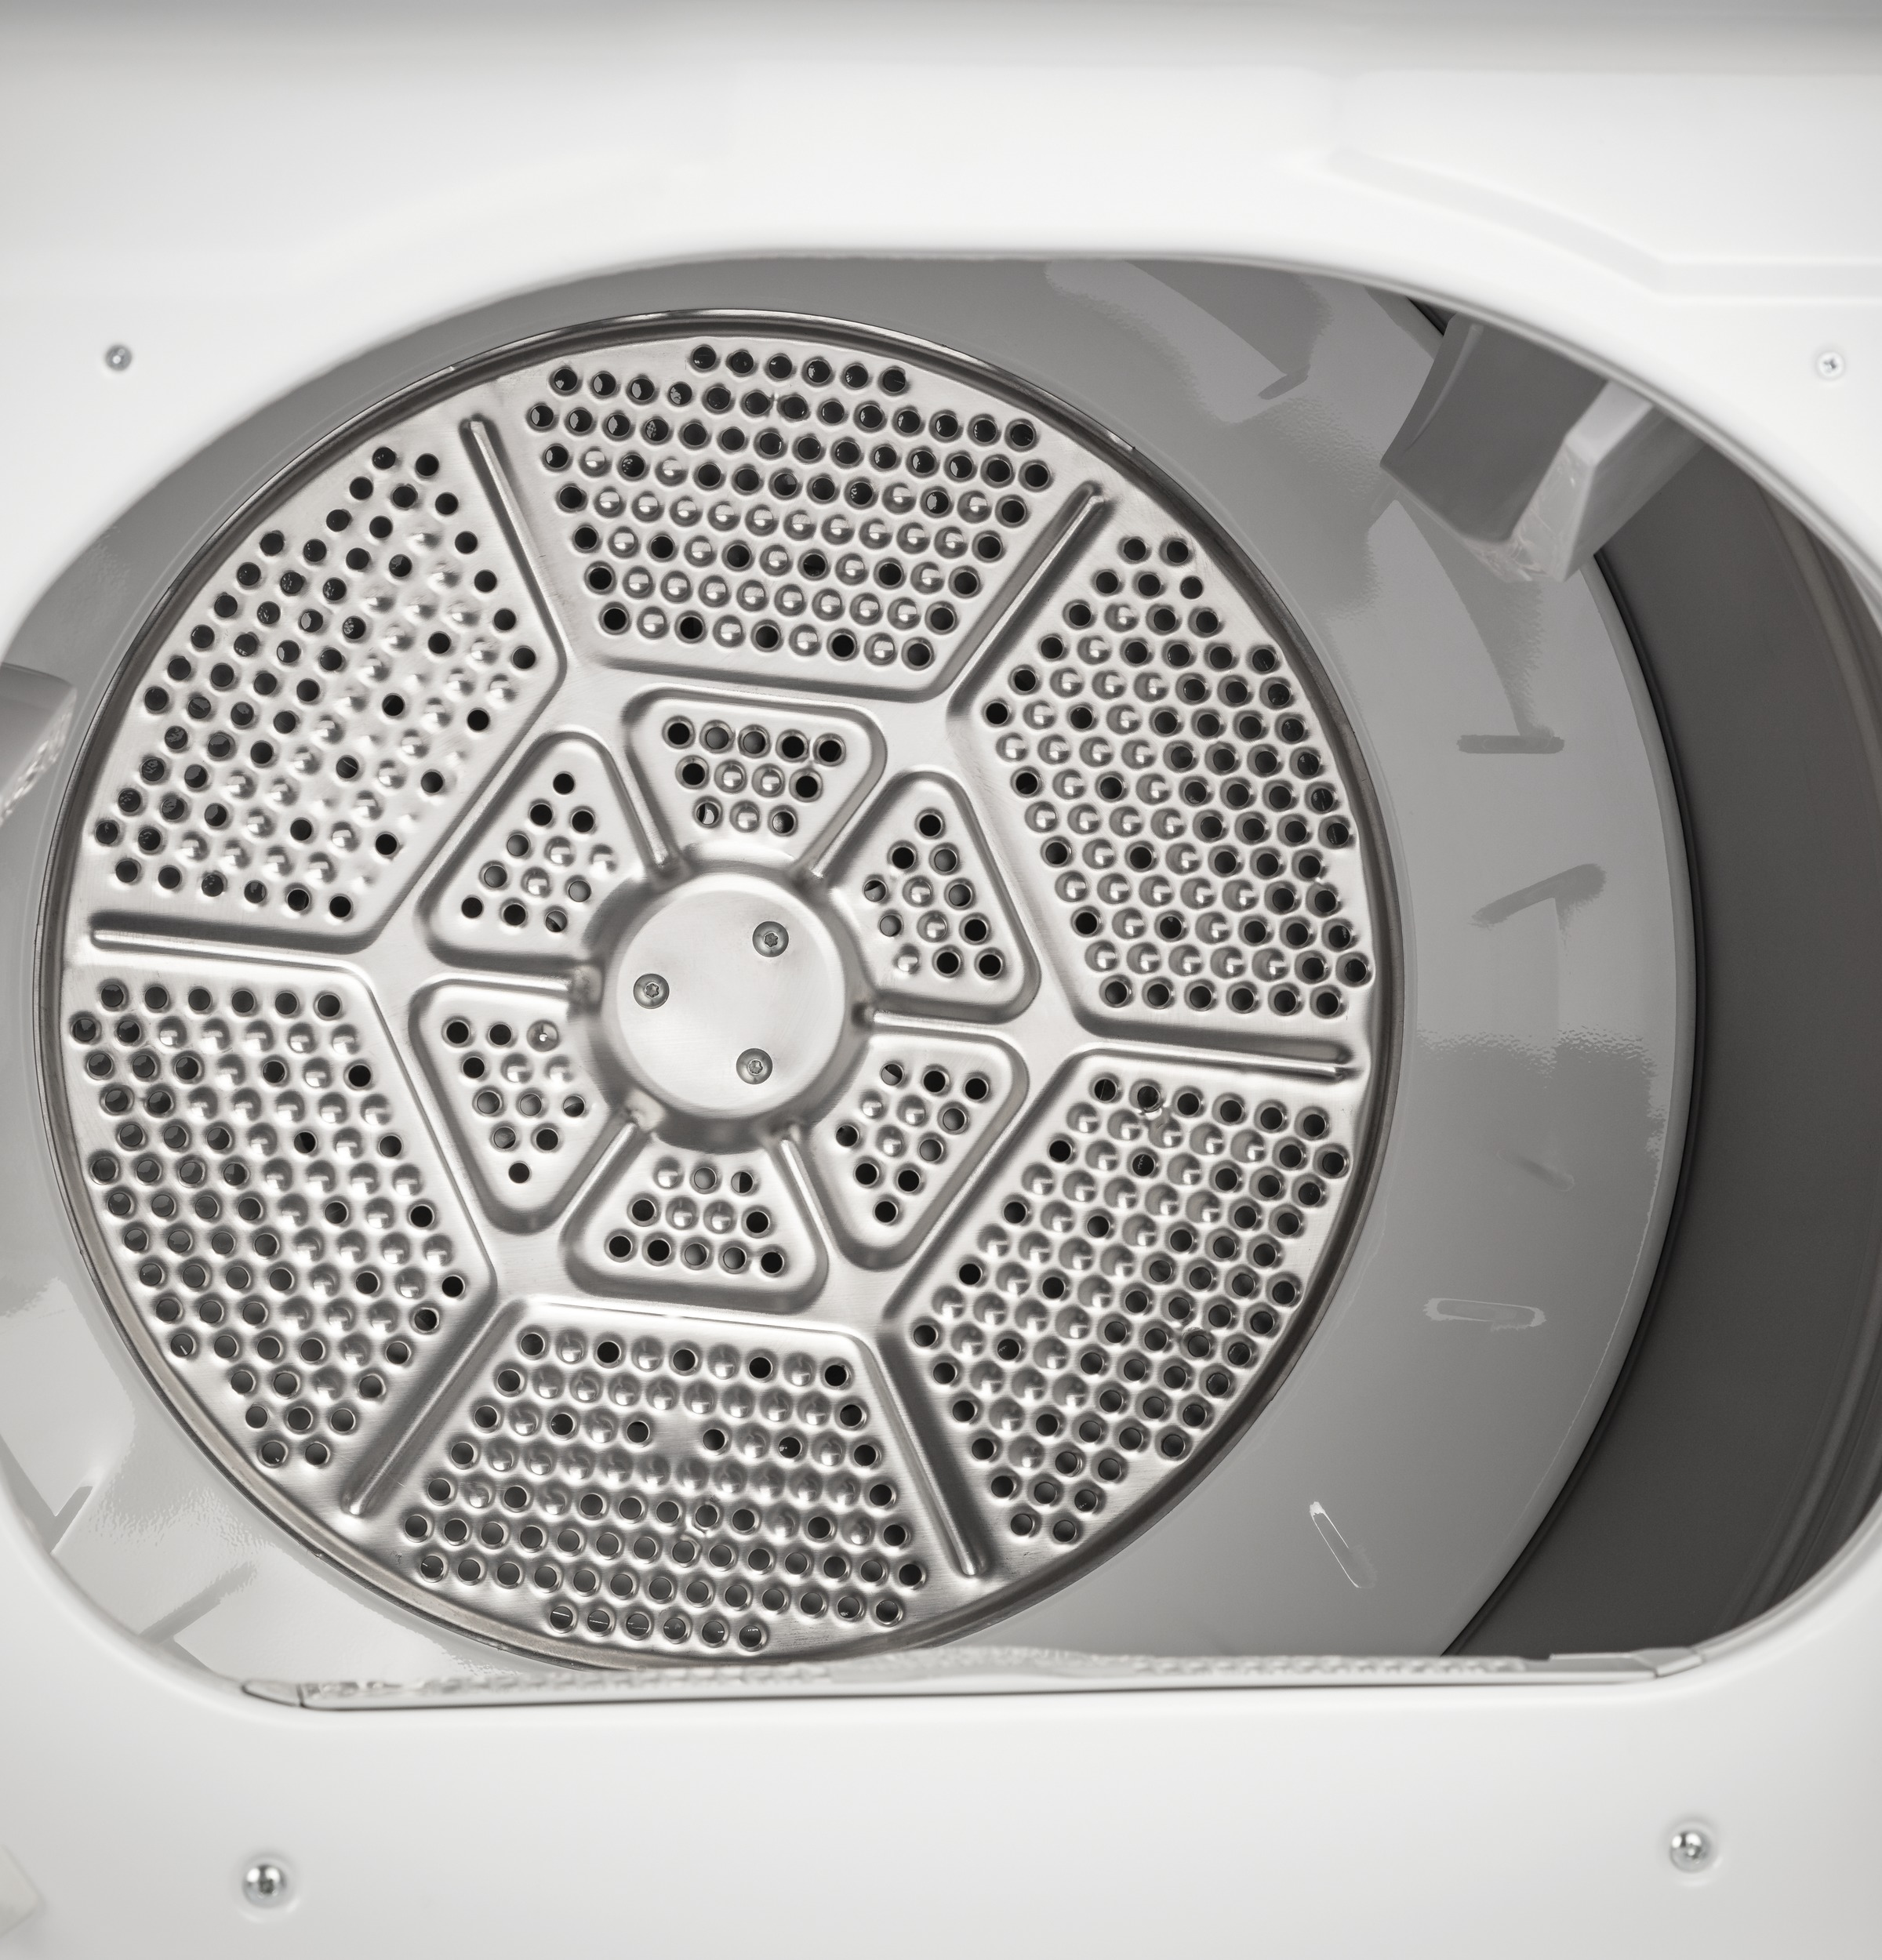 Model: GTD84GCSNWS | GE GE® 7.4 cu. ft. Capacity Smart aluminized alloy drum Gas Dryer with Sanitize Cycle and HE Sensor Dry